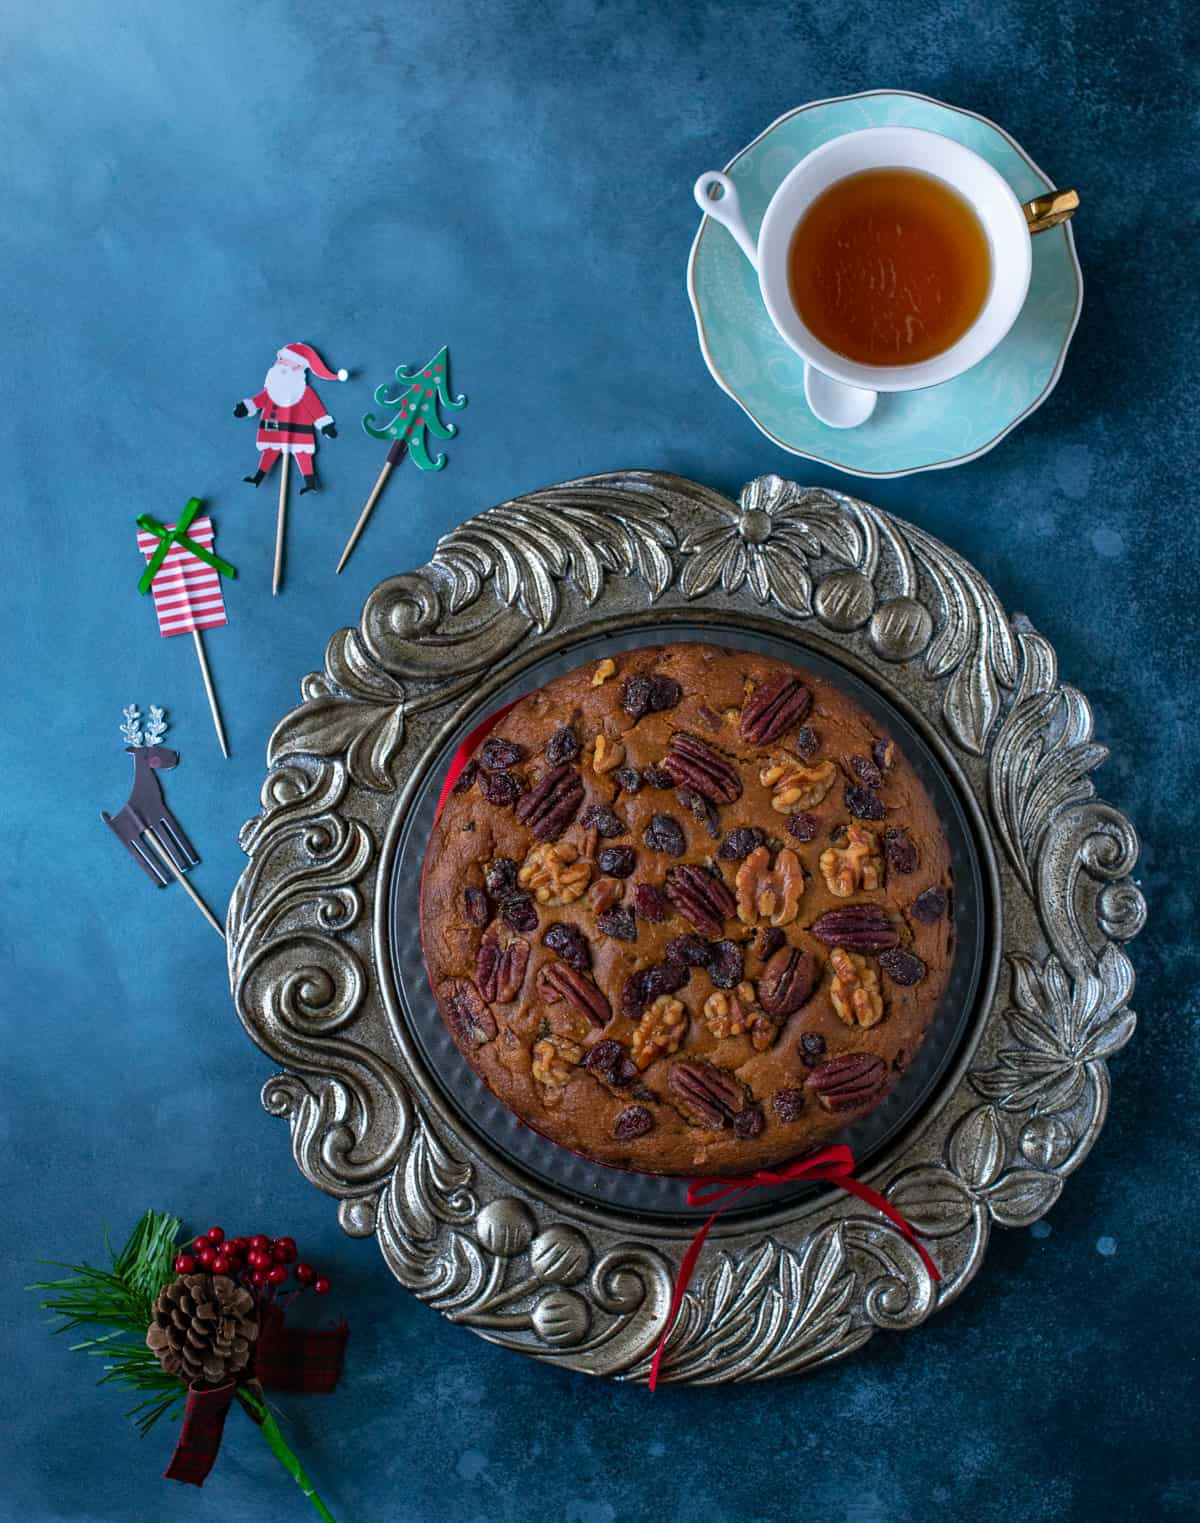 Vegan fruit cake served on a silver platter with tea on the side